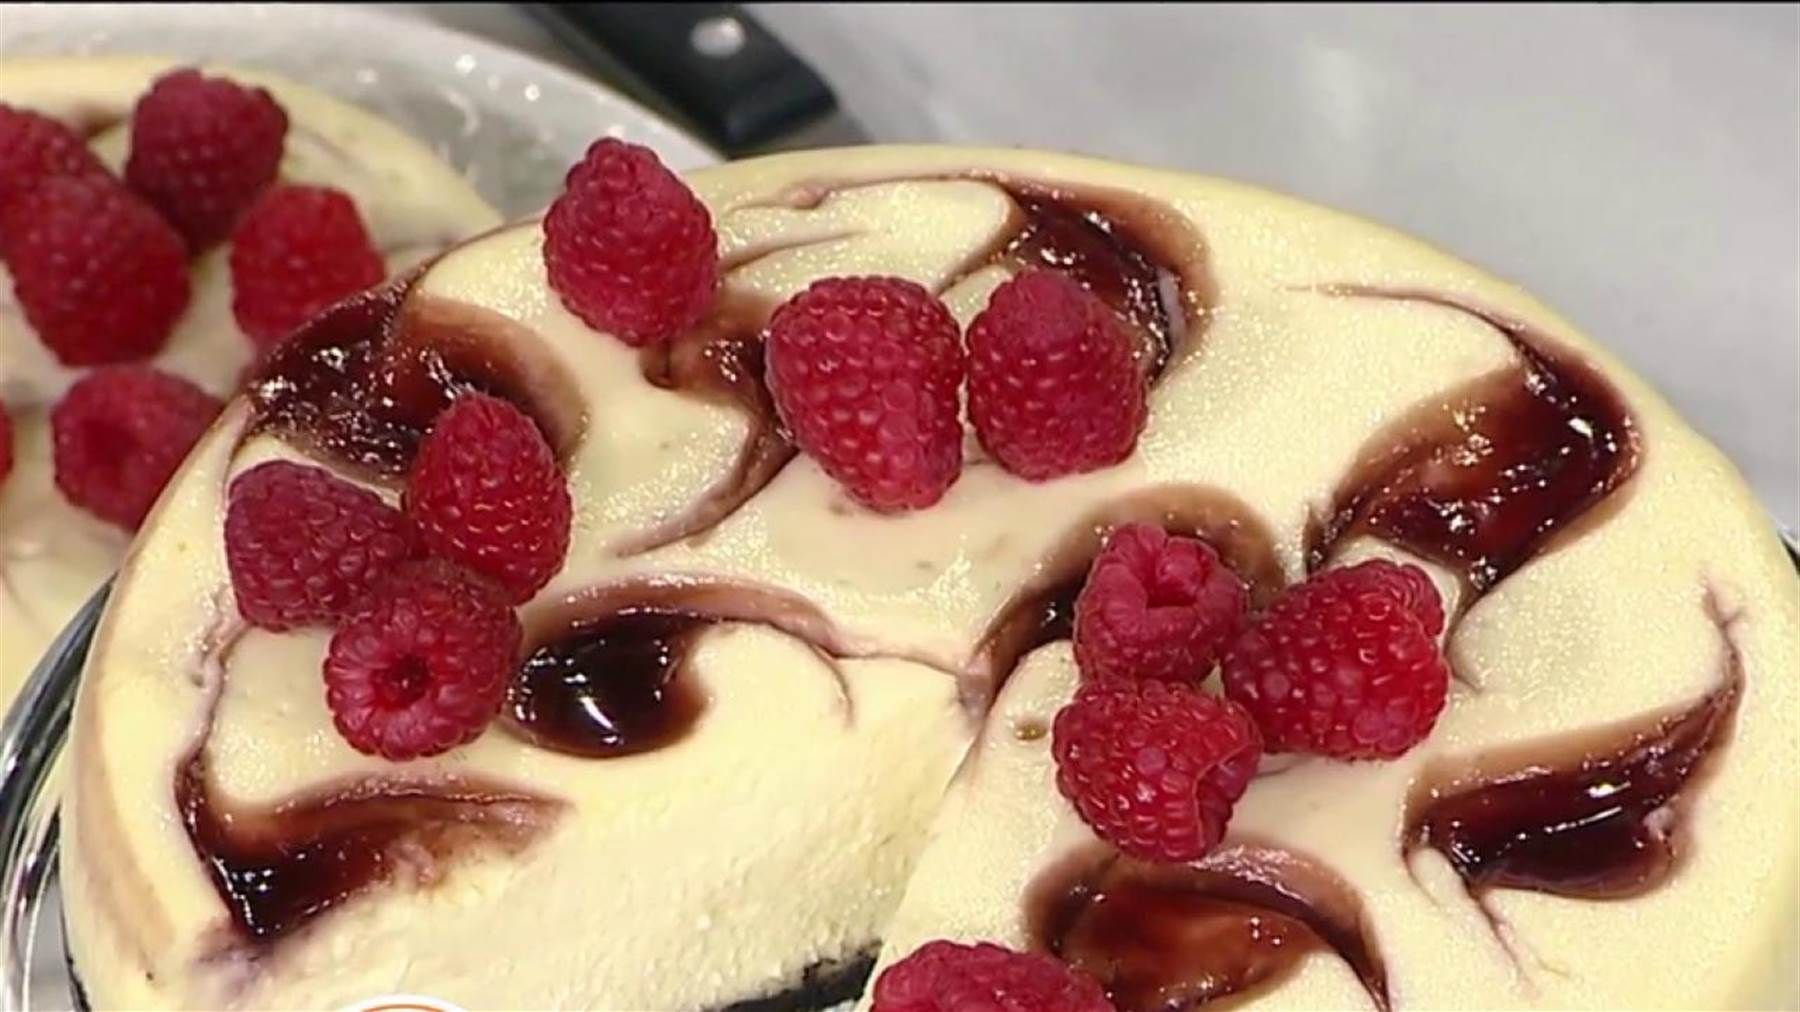 Make lava cake, cheesecake, fudge in your slow cooker: It's simple